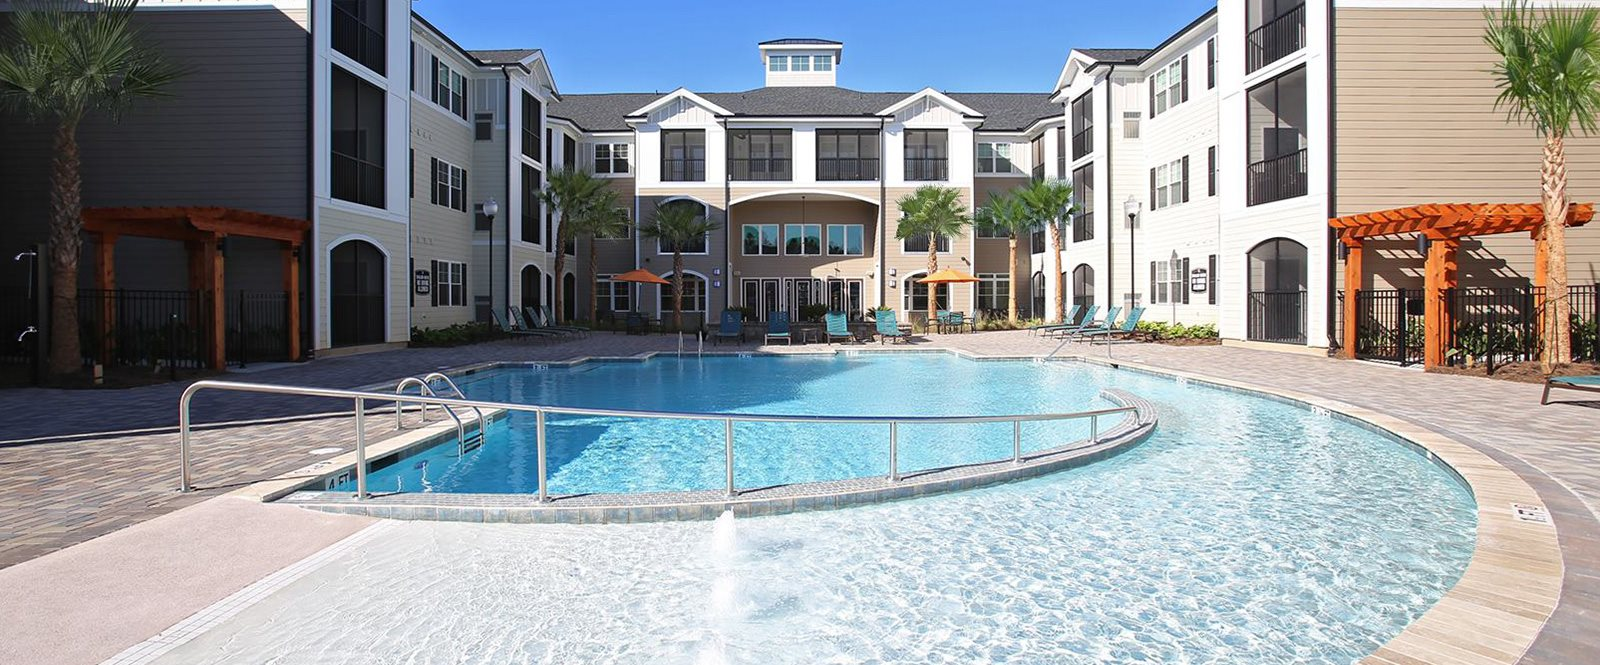 Crystal Clear Swimming Pool at Abberly Crossing Apartment Homes, South Carolina, 29456